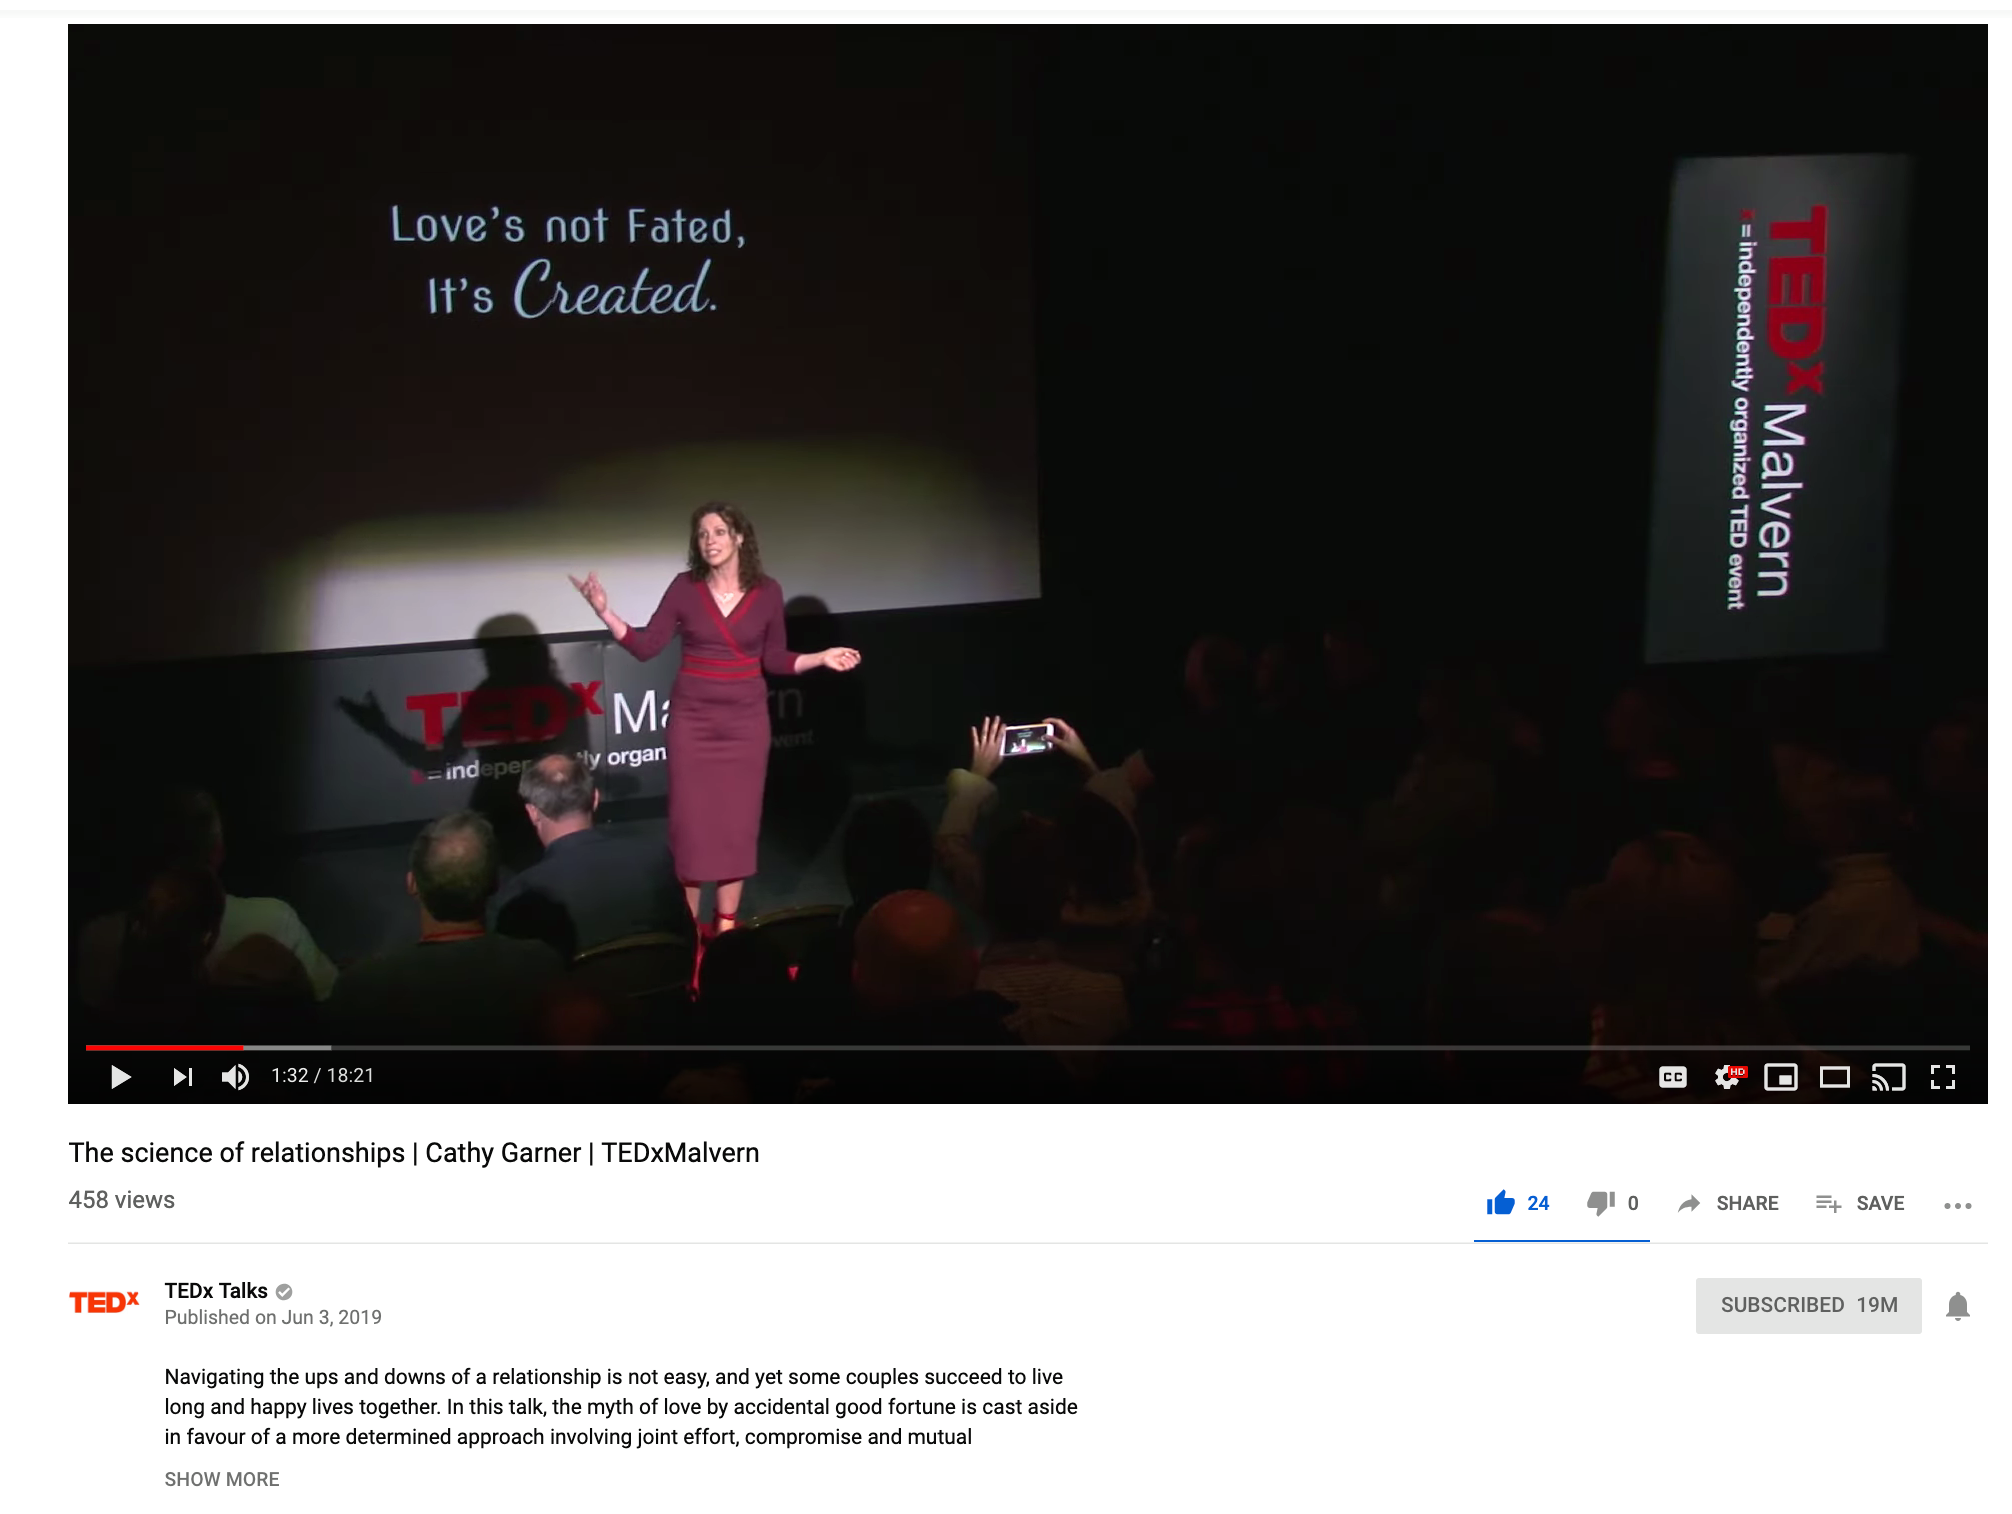 CathyGarnerOnTEDxYouTubepng